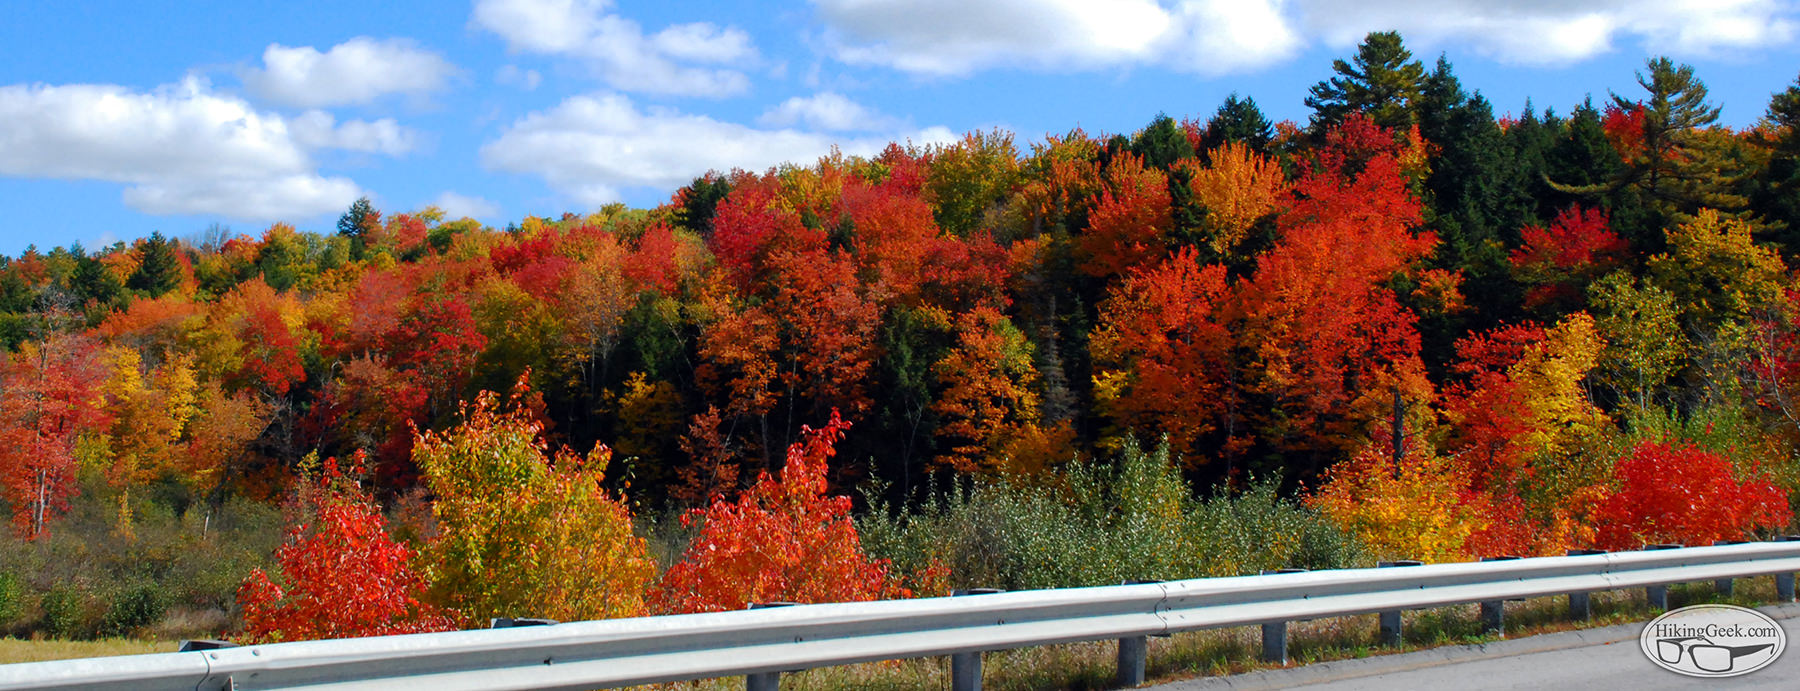 New Hampshire Foliage, October 2016